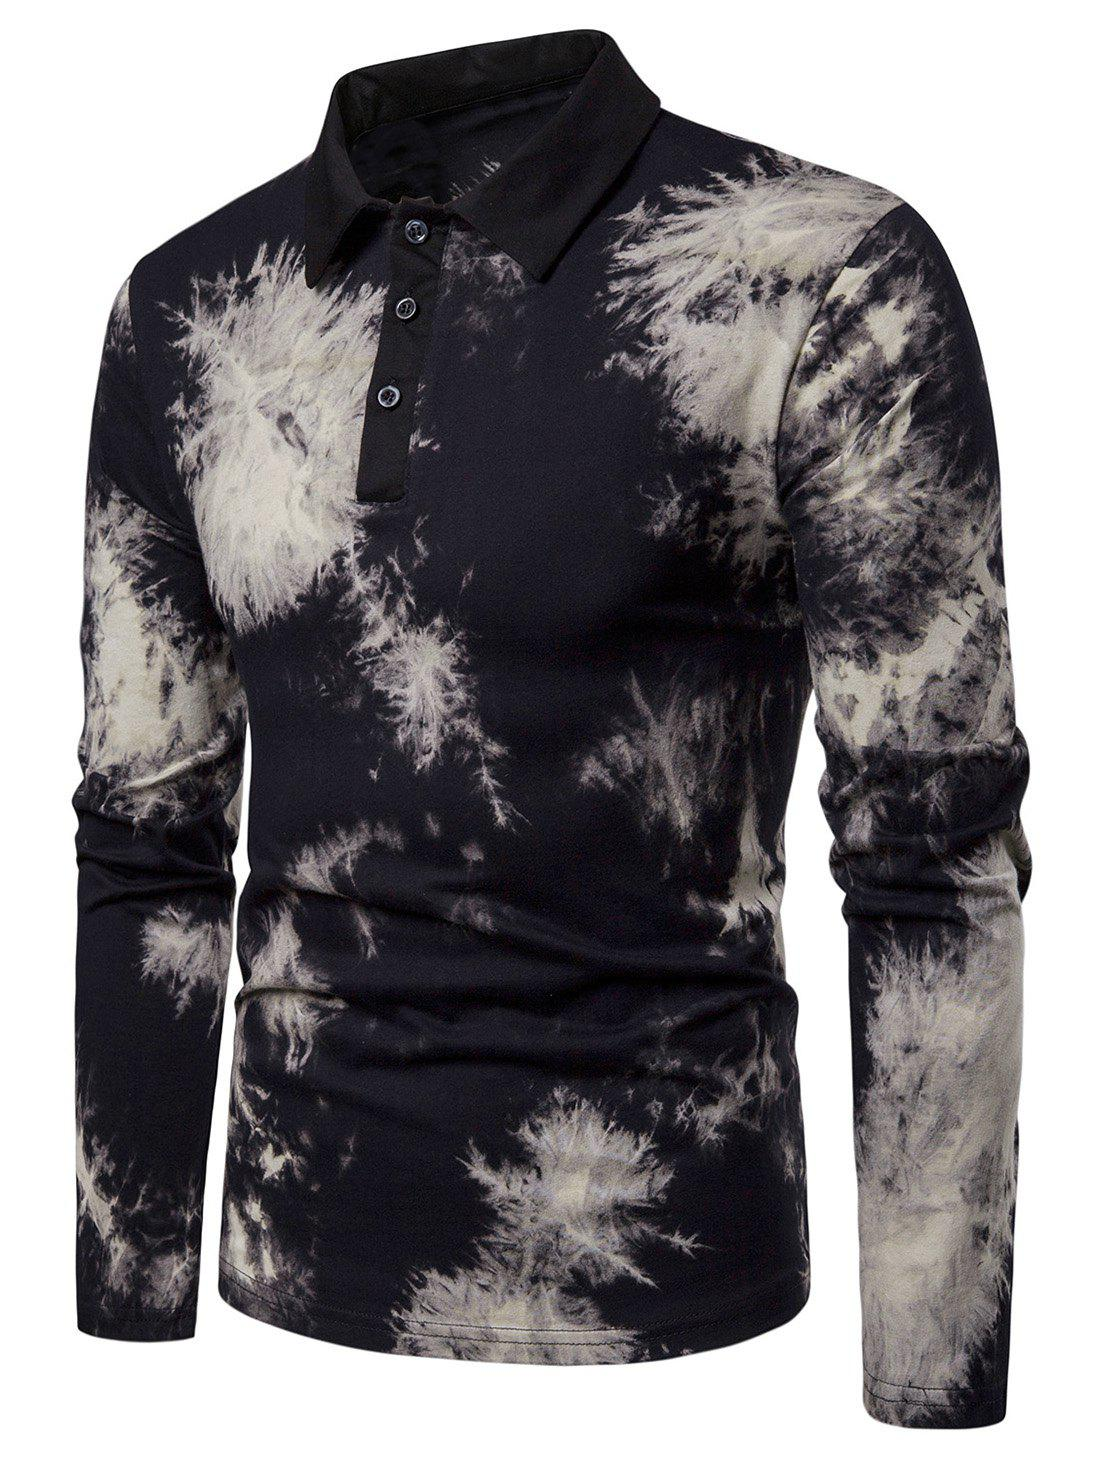 Store Collared Buttoned Tie Dye T-Shirt